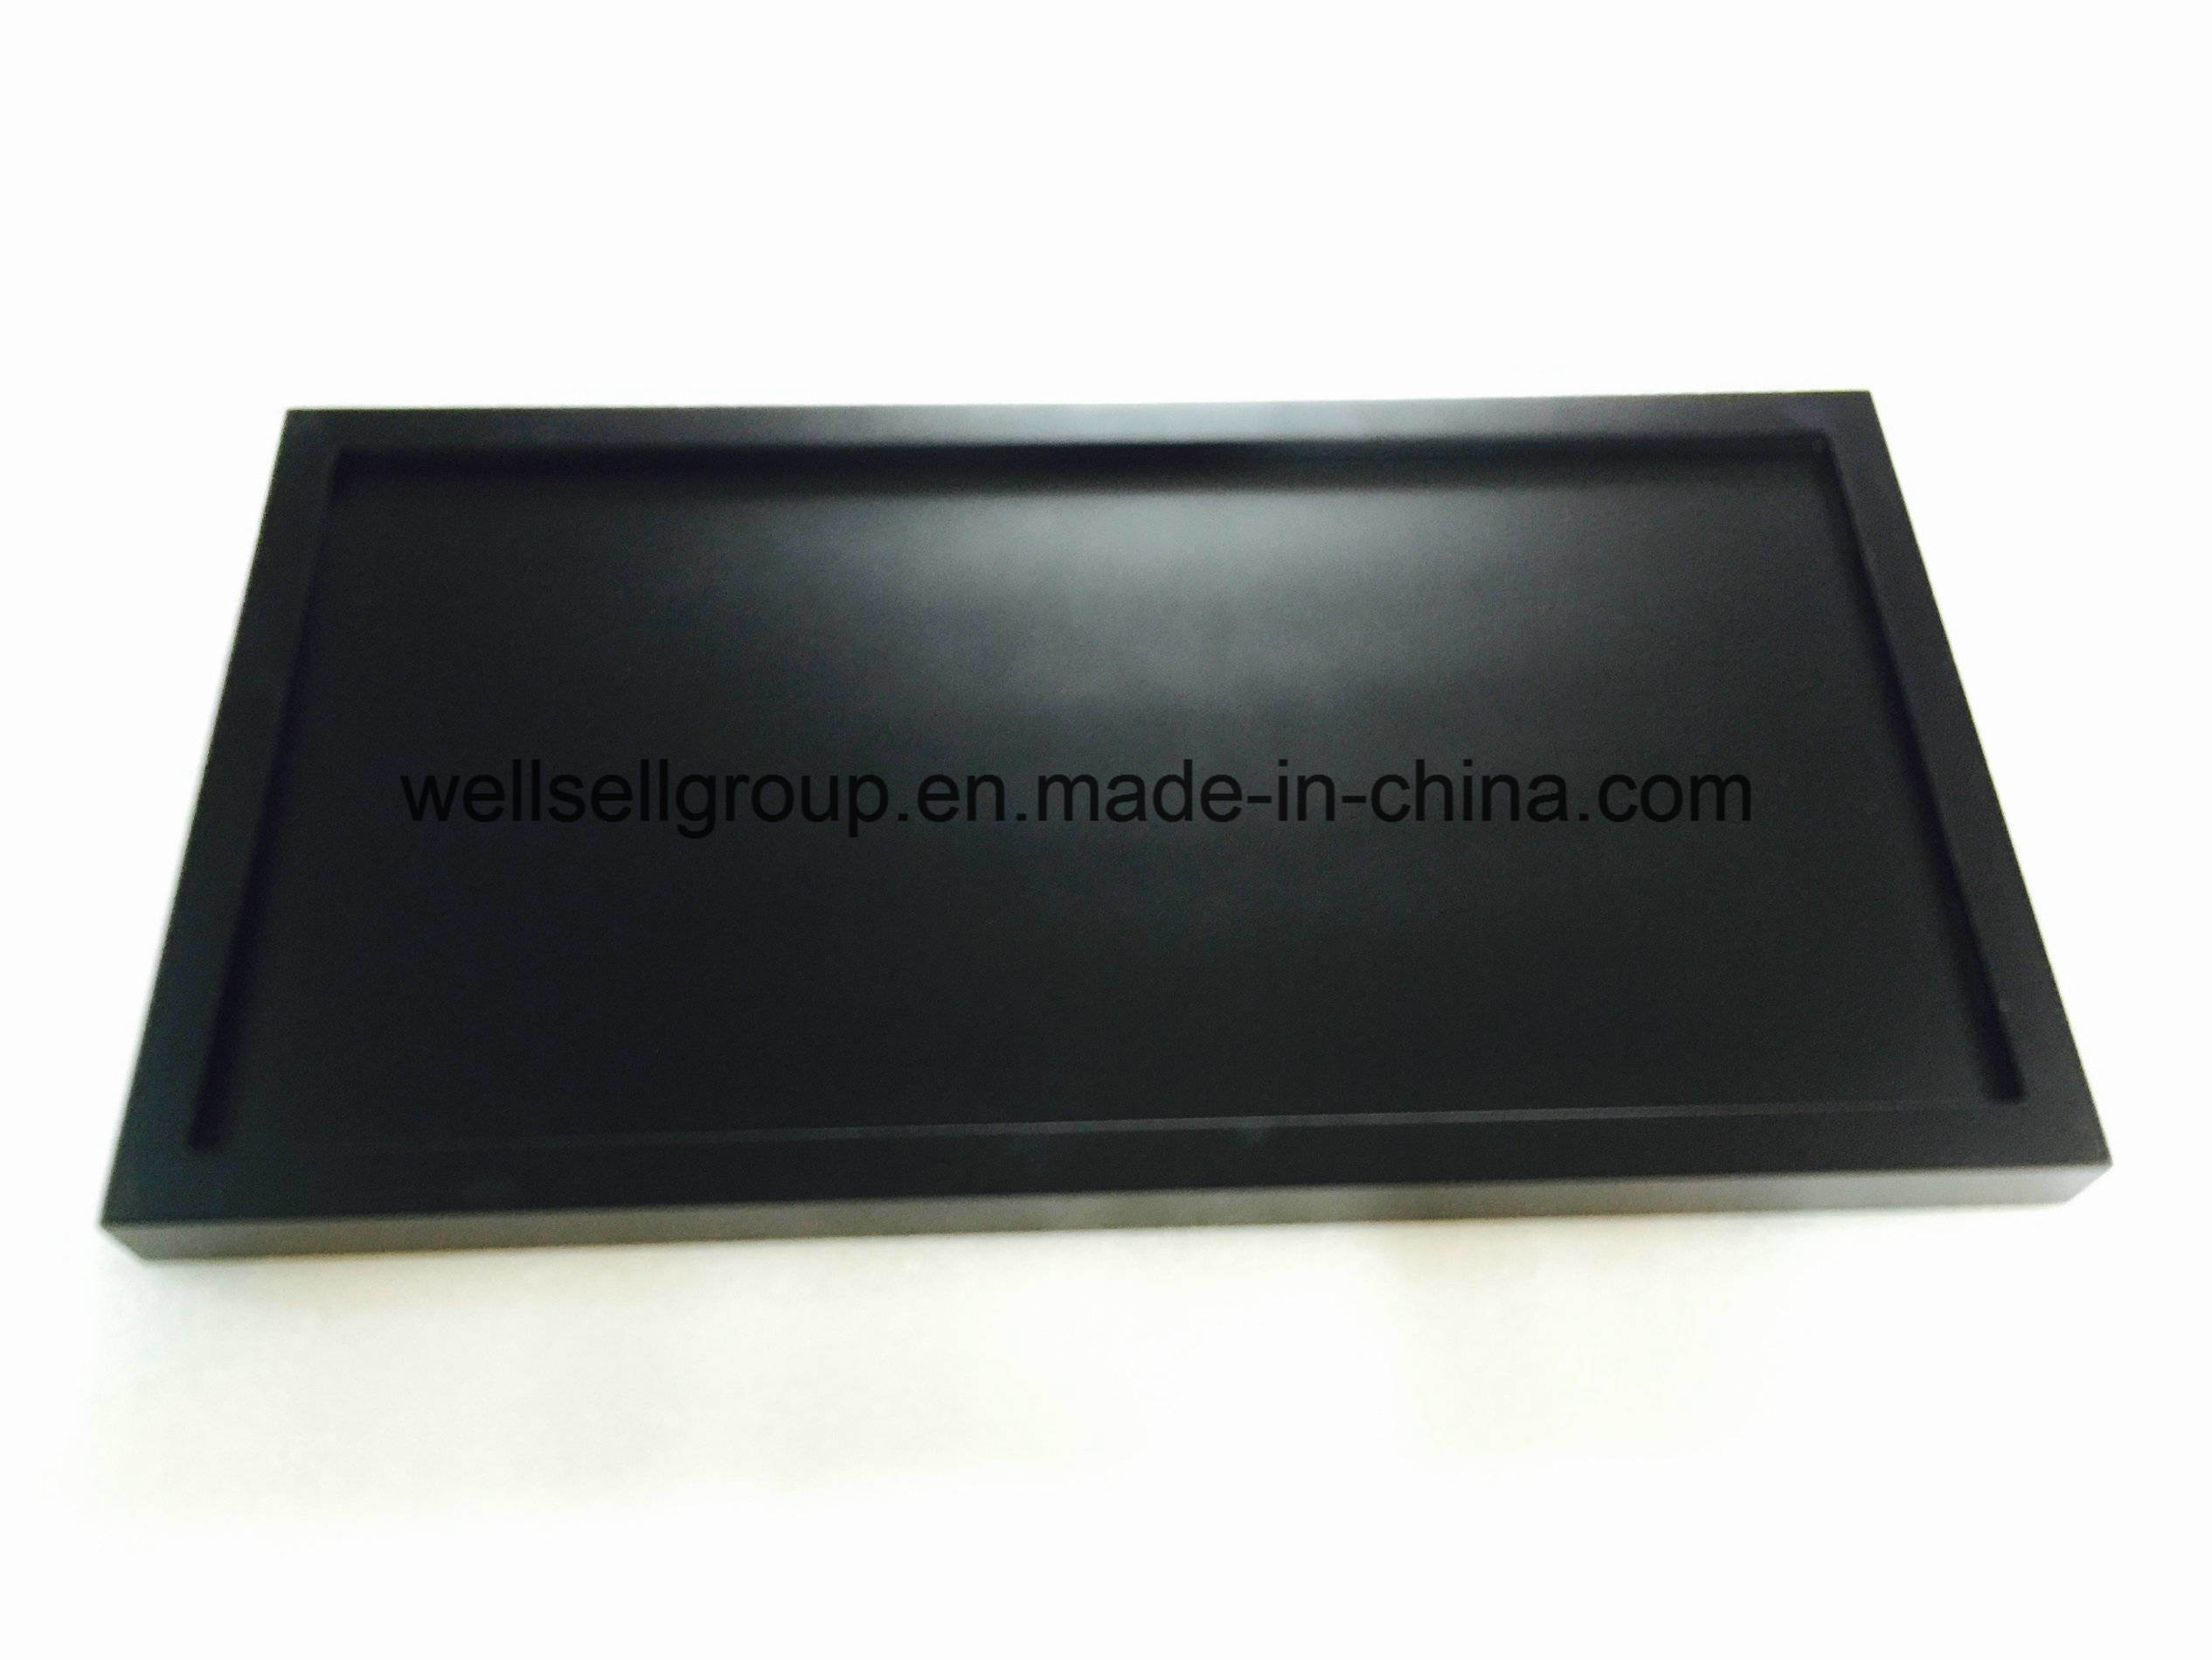 Acrylic and MDF Display with Gift Box